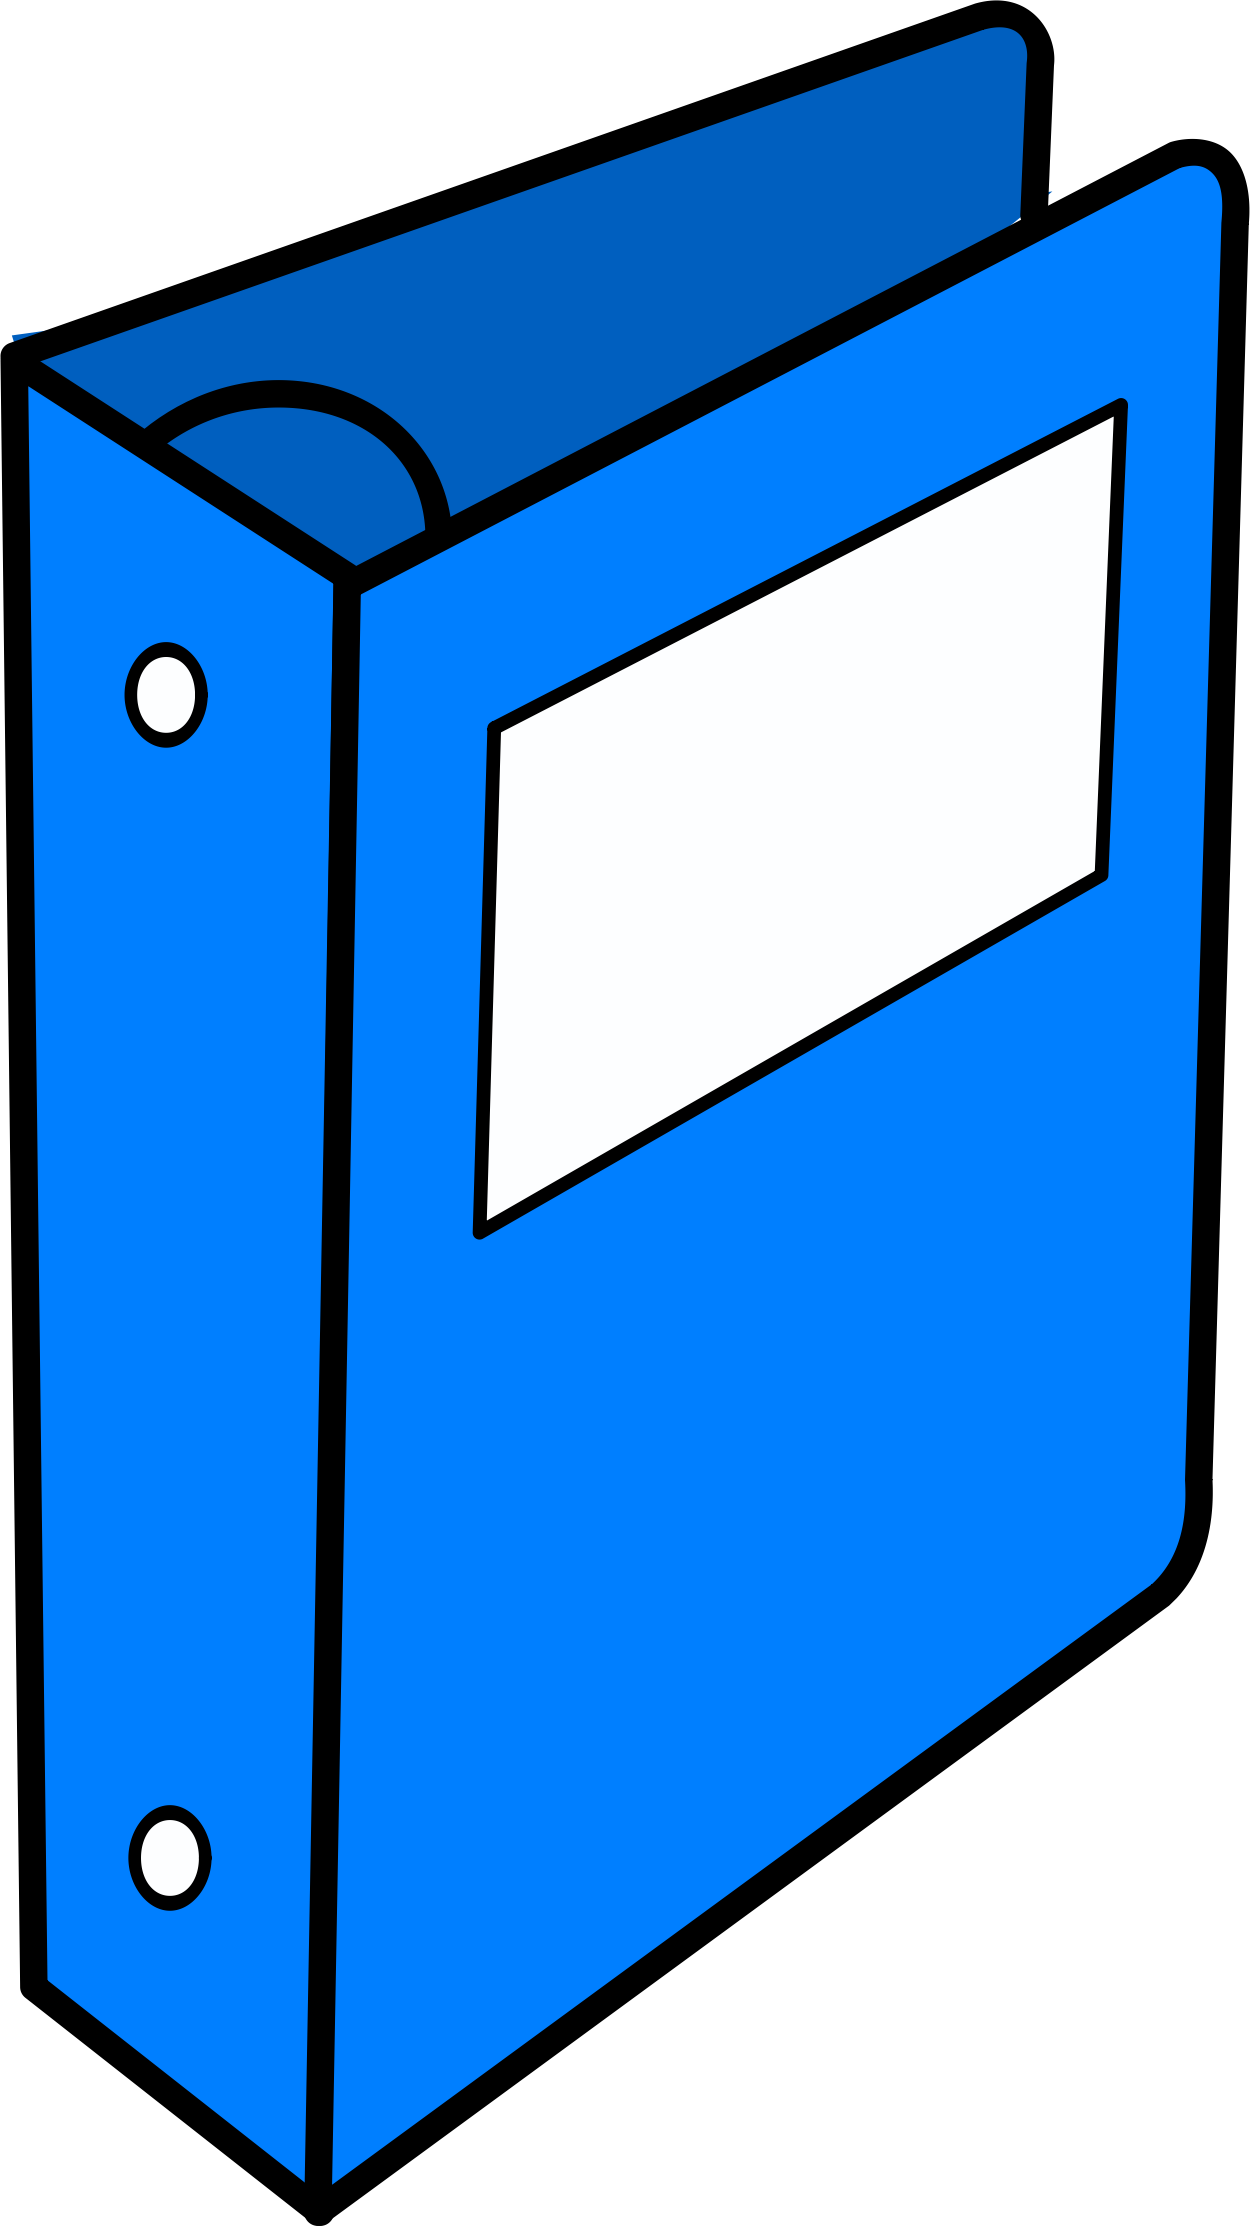 Binder drawing. Clipart blue big image